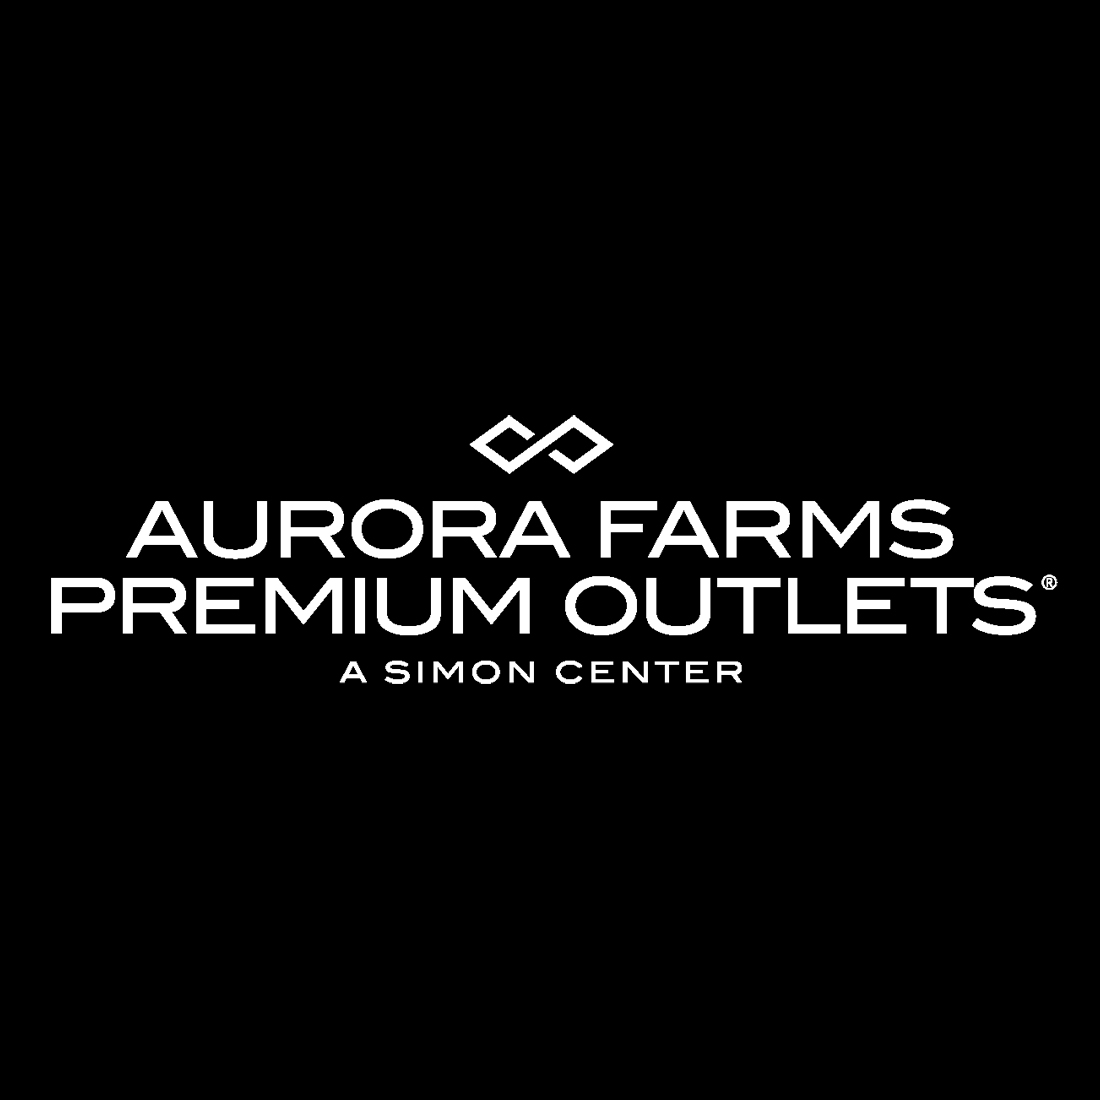 Aurora farms discount coupons